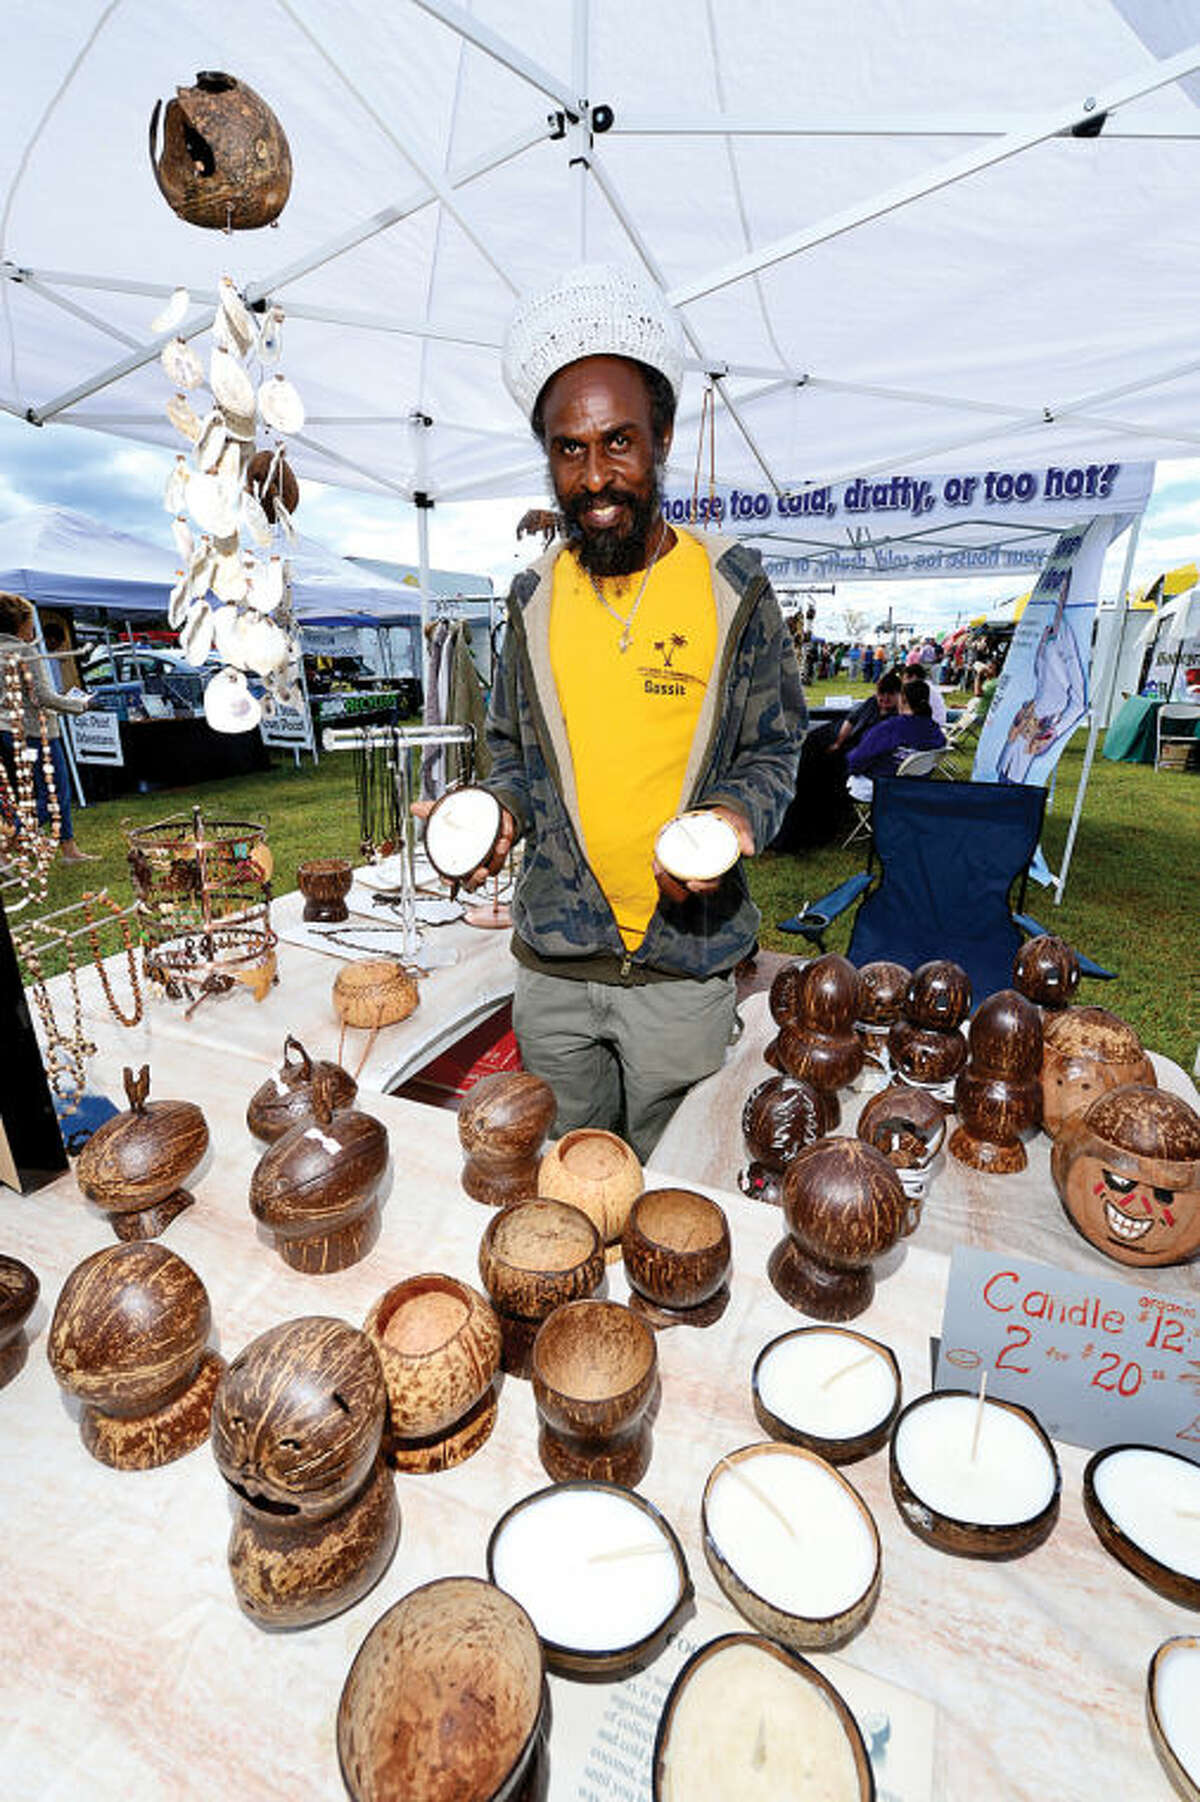 Gussie Bradford displays coconut candles from Organic Ornaments during the Live Green Connecticut! green-living and family festival Saturday at Taylor Farm Park. The two-day festival promotes living green with a focus on education, sustainability, caring for the environment and our natural resources.Hour photo / Erik Trautmann